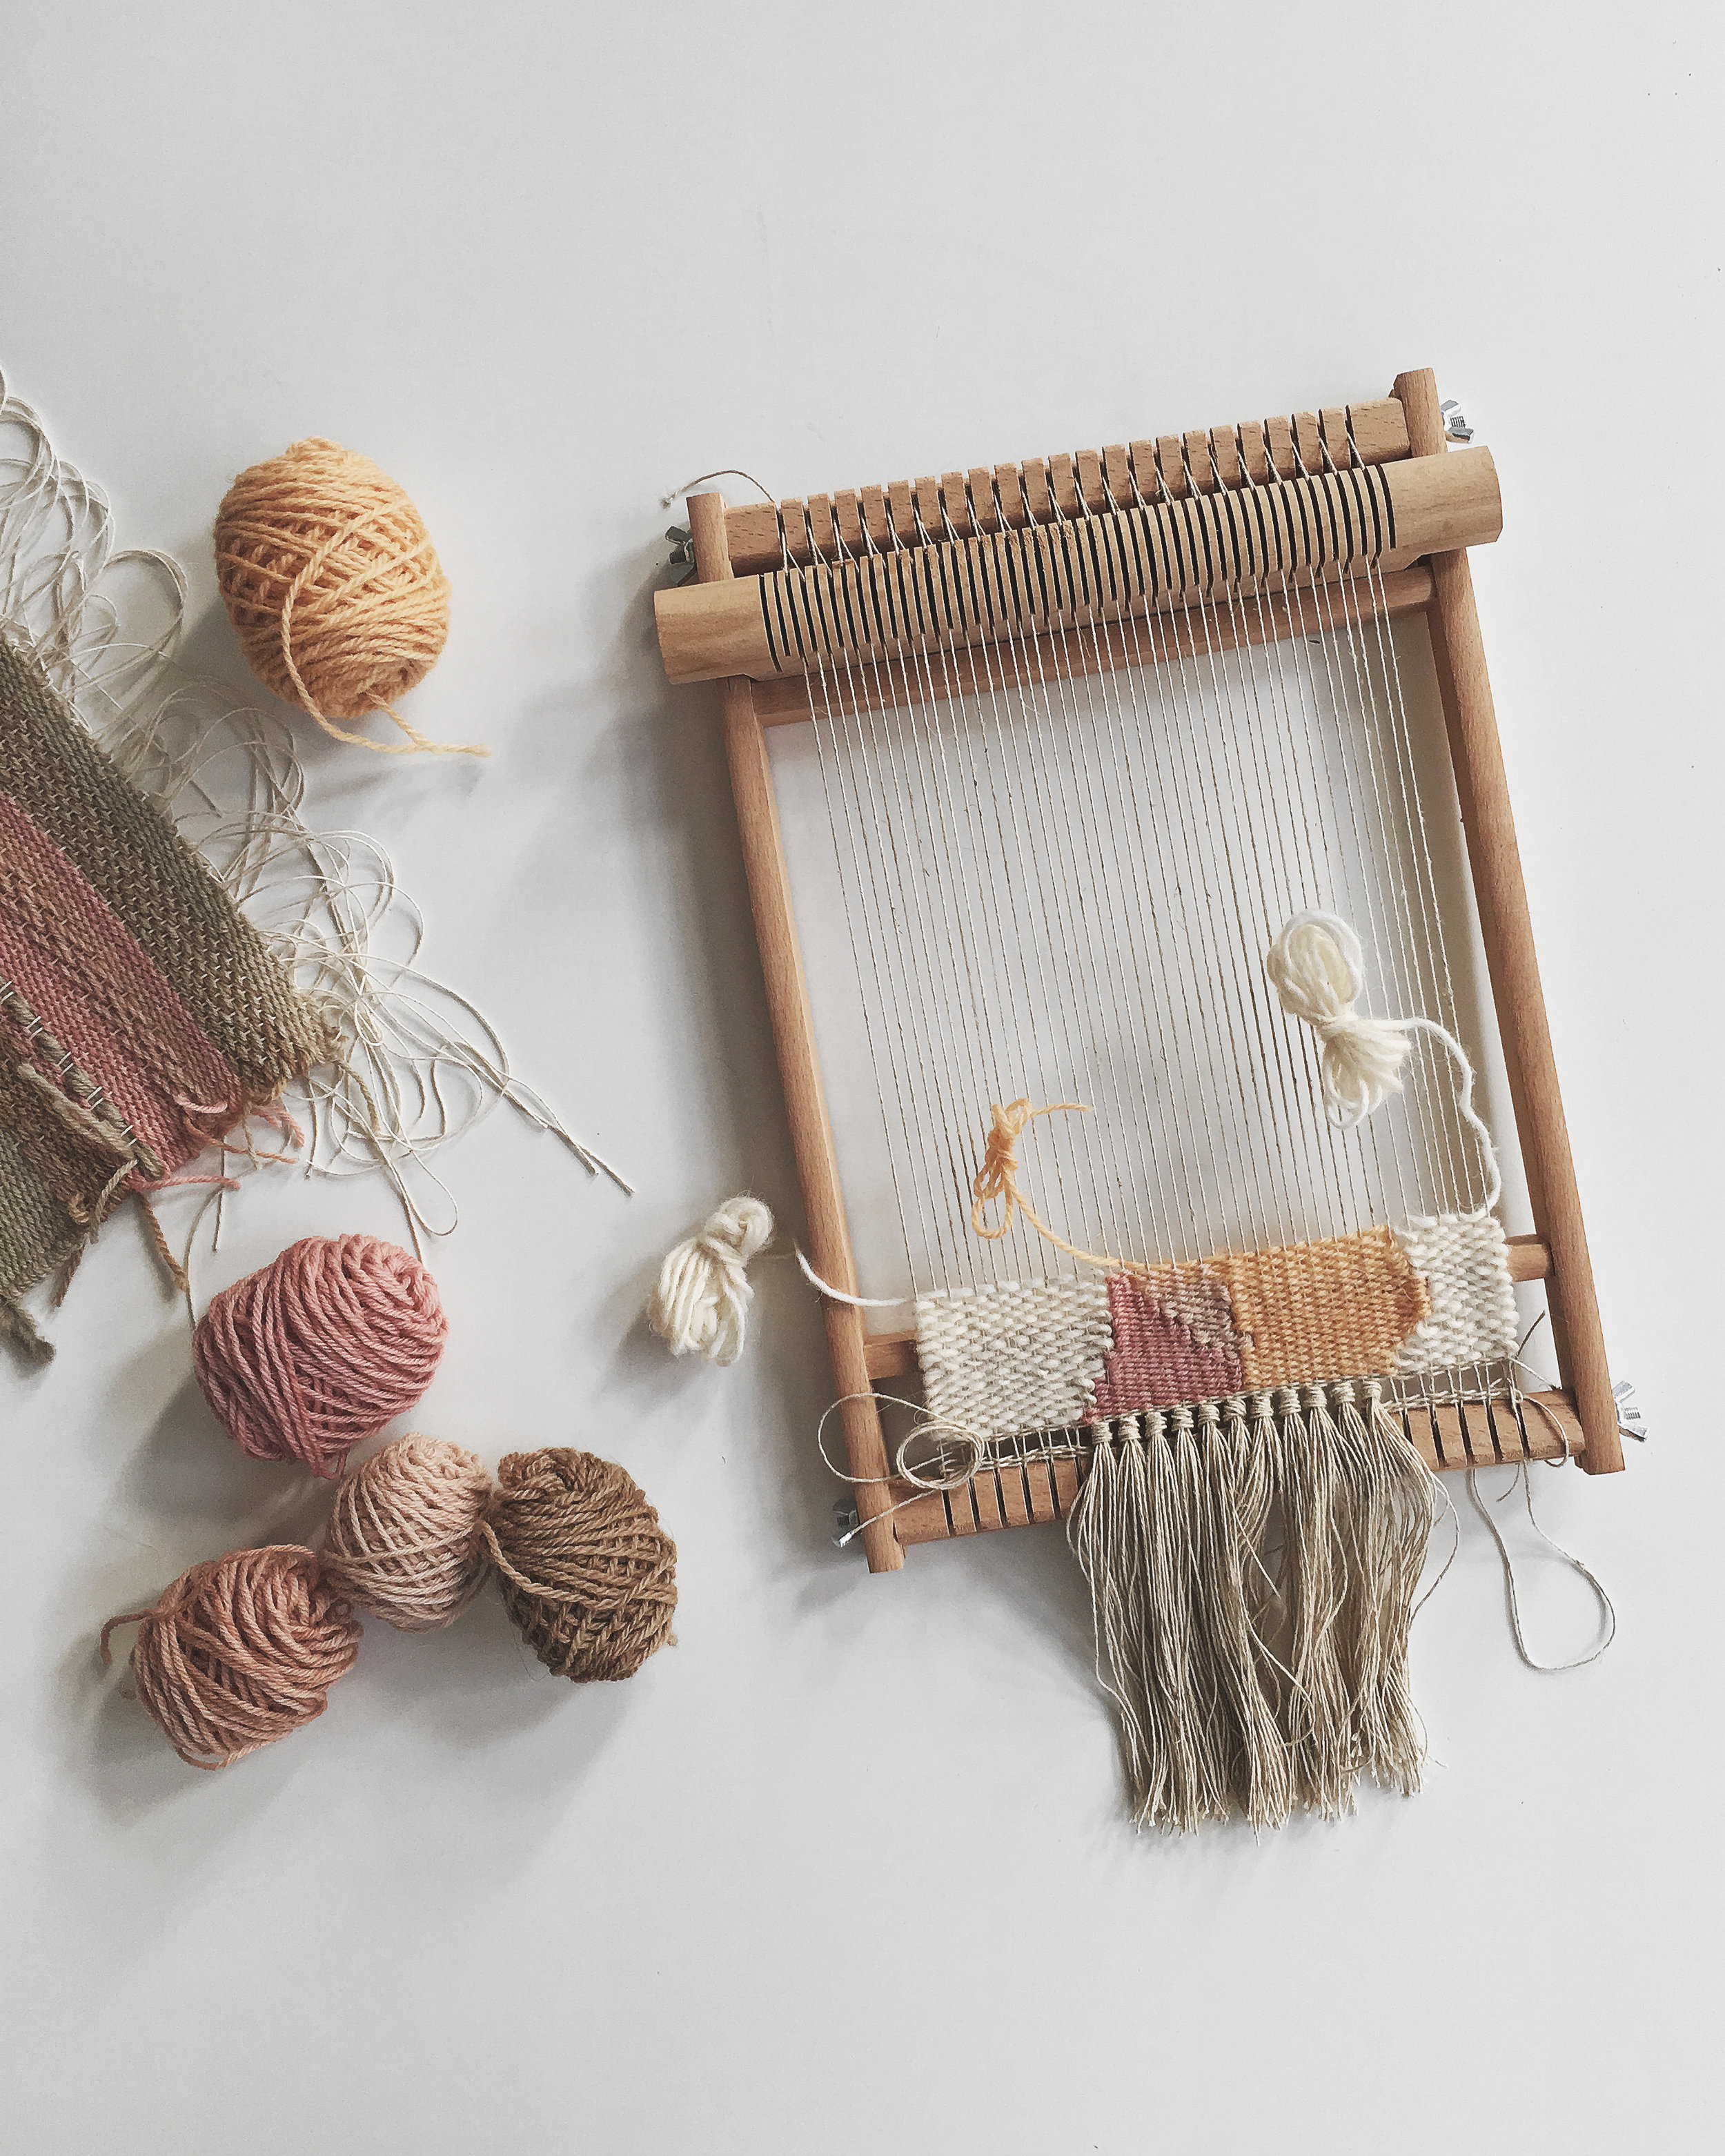 Handwoven tapestry on our adjustable tension frame looms made in Germany